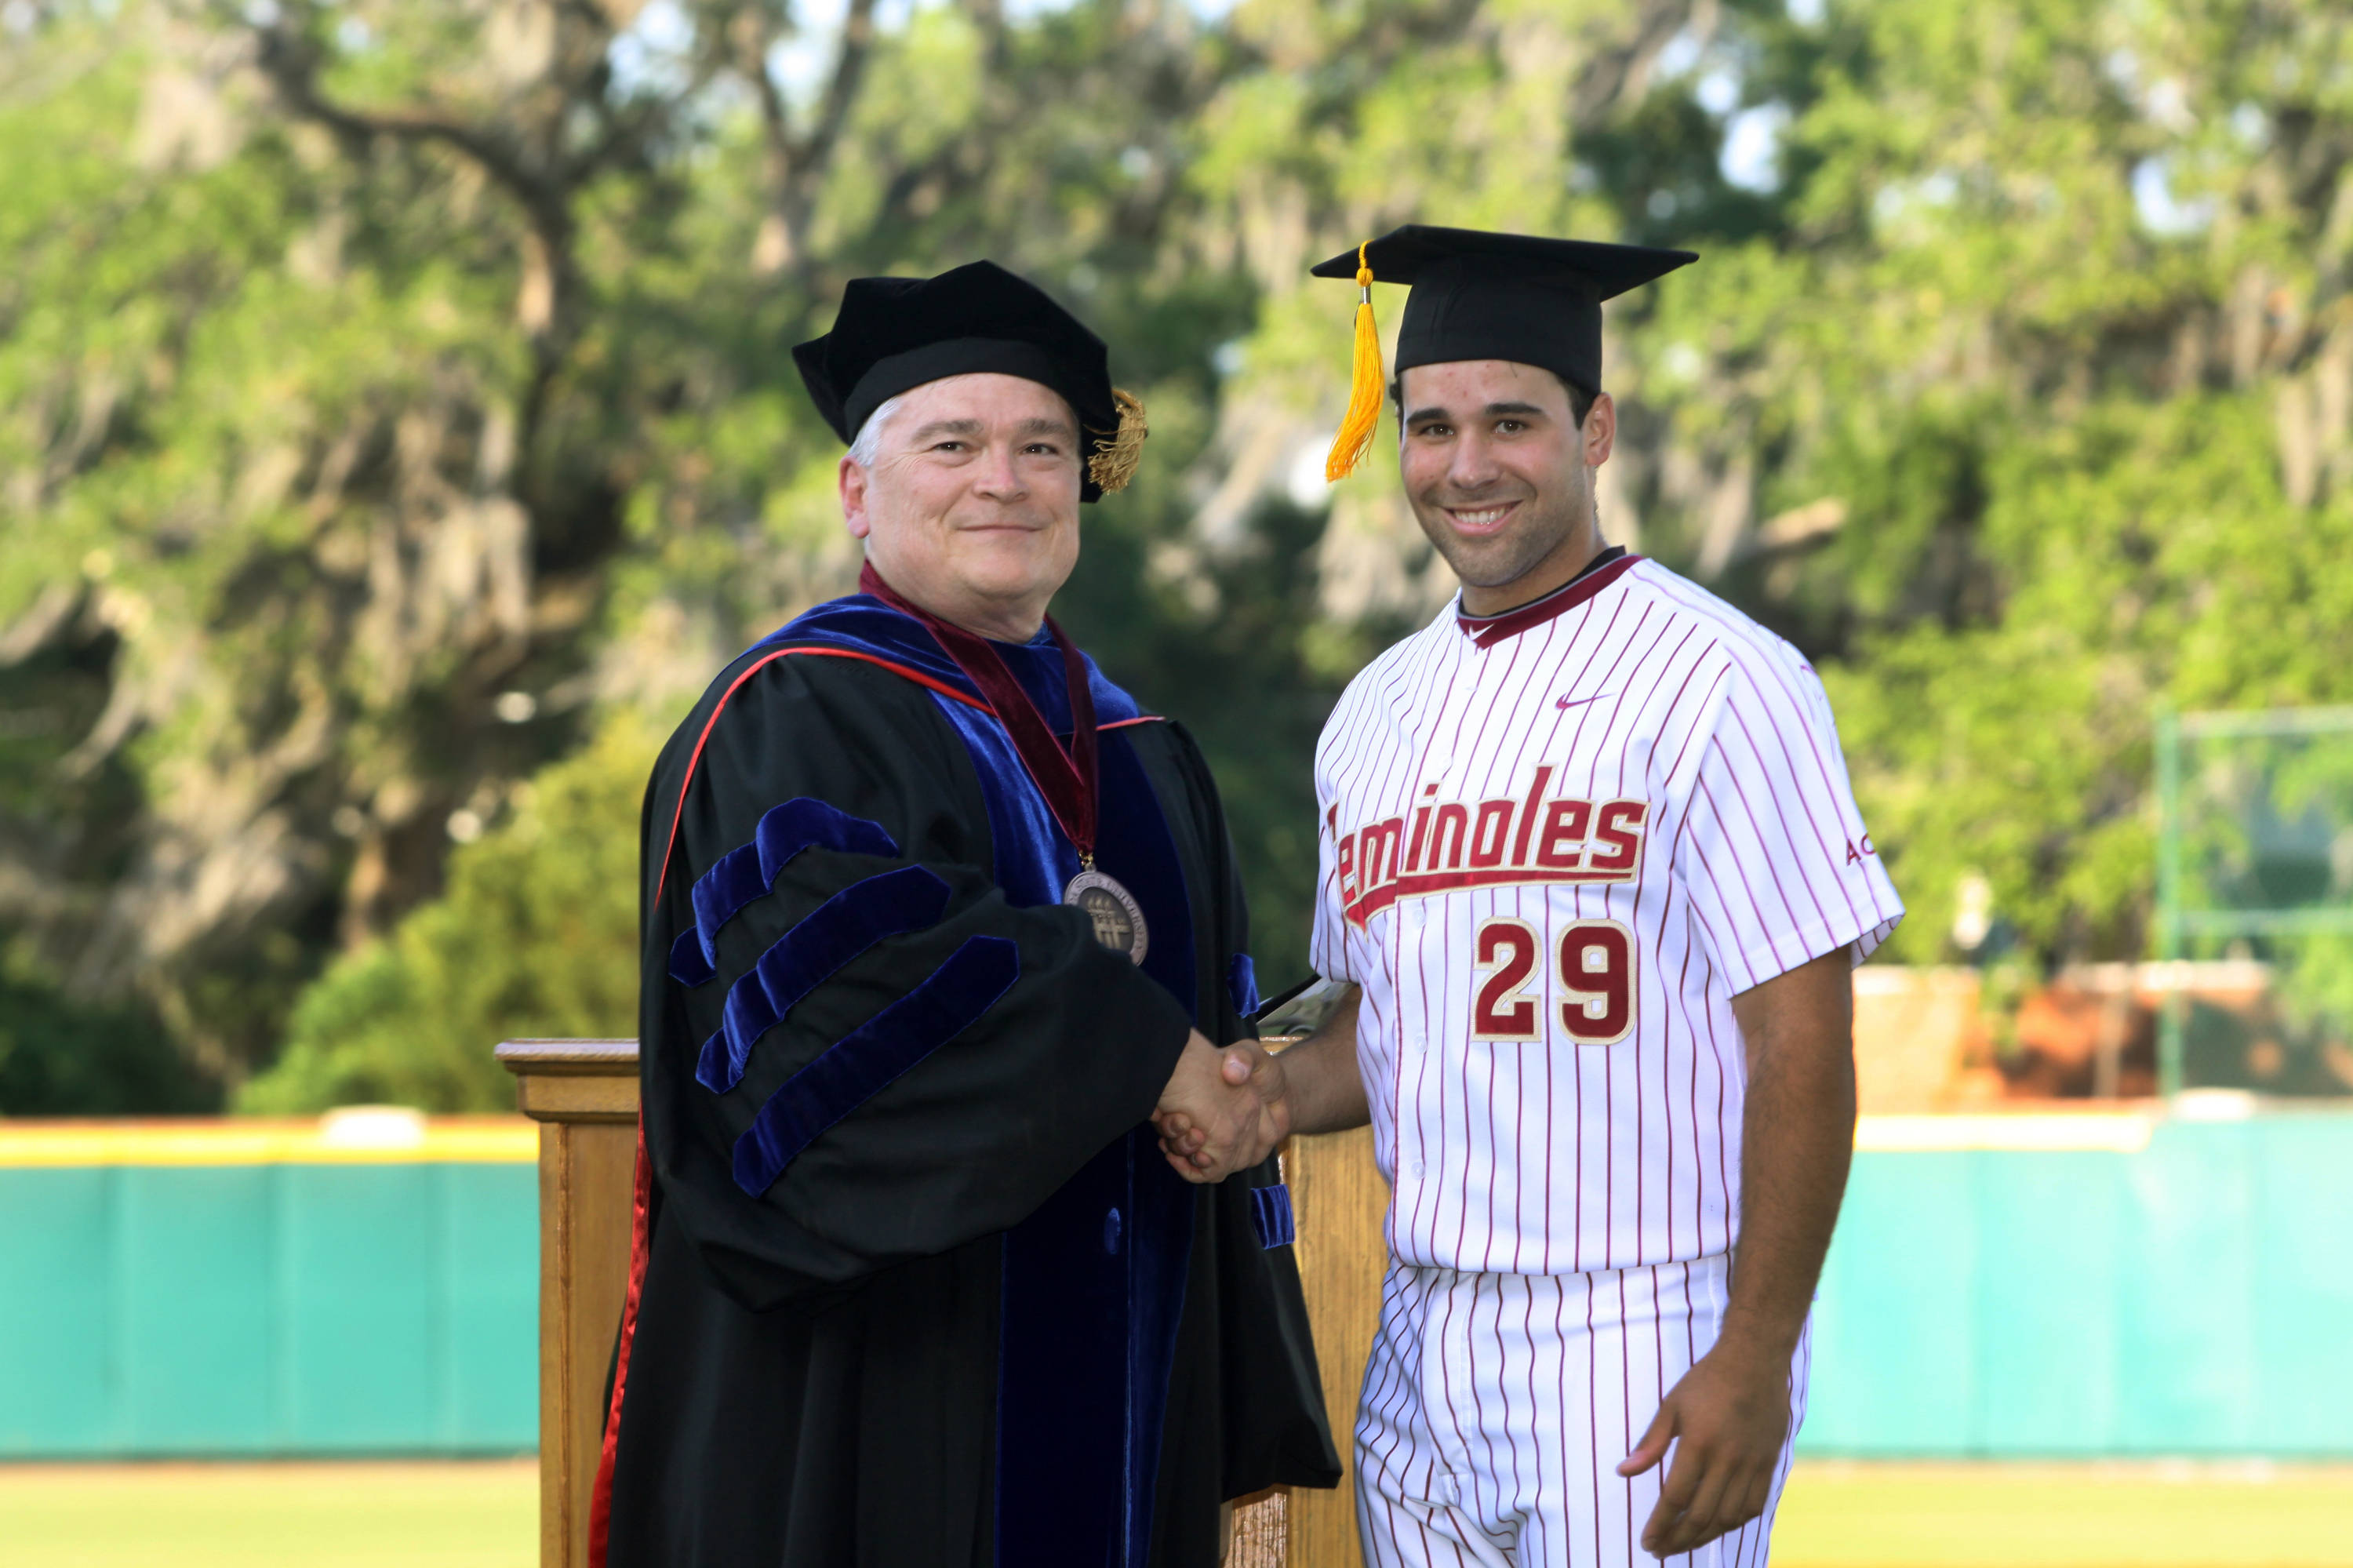 2011 Spring Graduation Ceremony held at Dick Howser Stadium to honor the graduating baseball seniors. Rafael Lopez (29) with President Barron